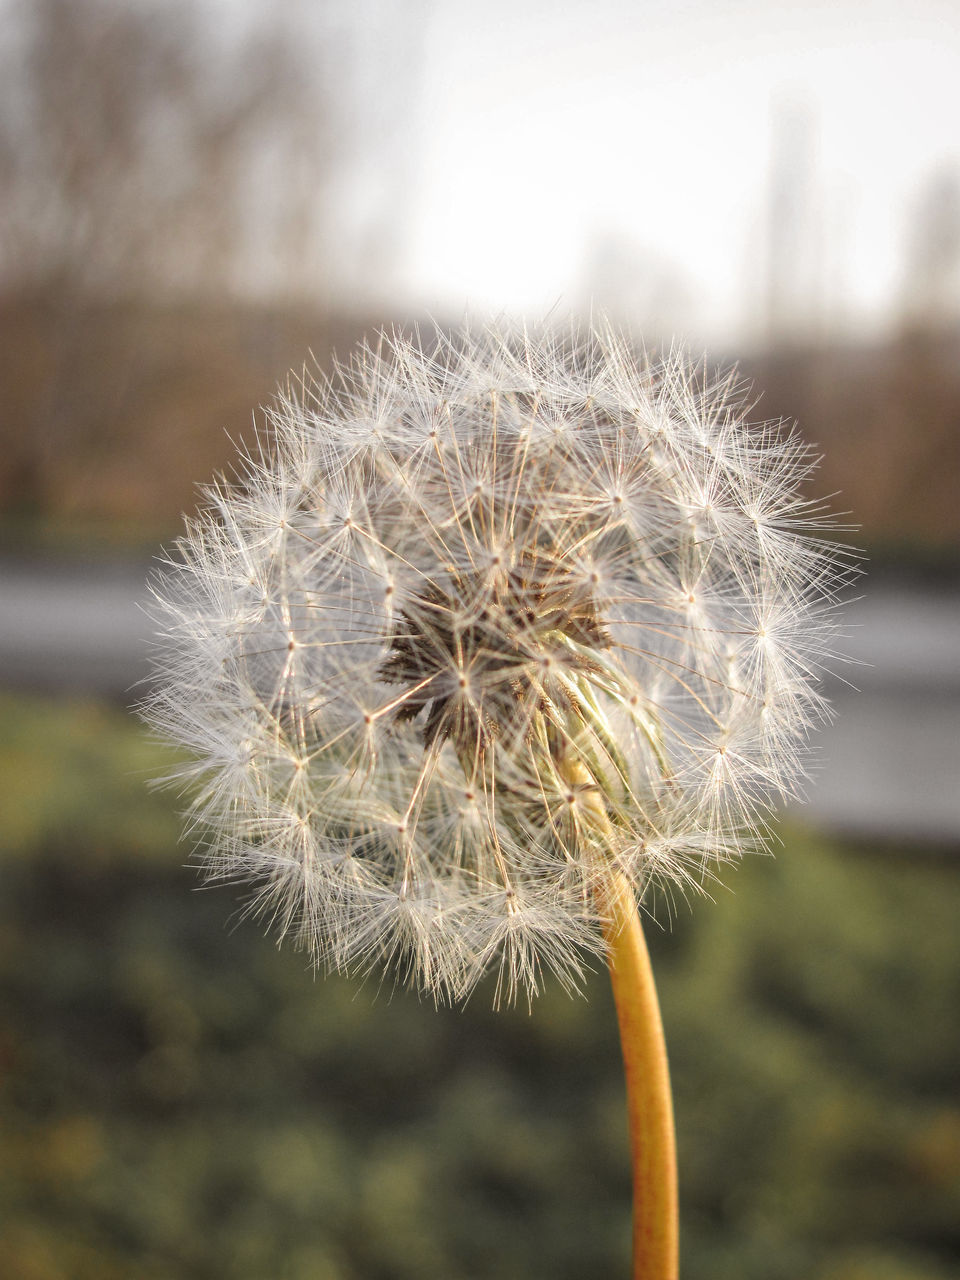 fragility, vulnerability, dandelion, flower, focus on foreground, flowering plant, close-up, plant, freshness, beauty in nature, softness, growth, inflorescence, flower head, nature, day, dandelion seed, no people, plant stem, outdoors, wilted plant